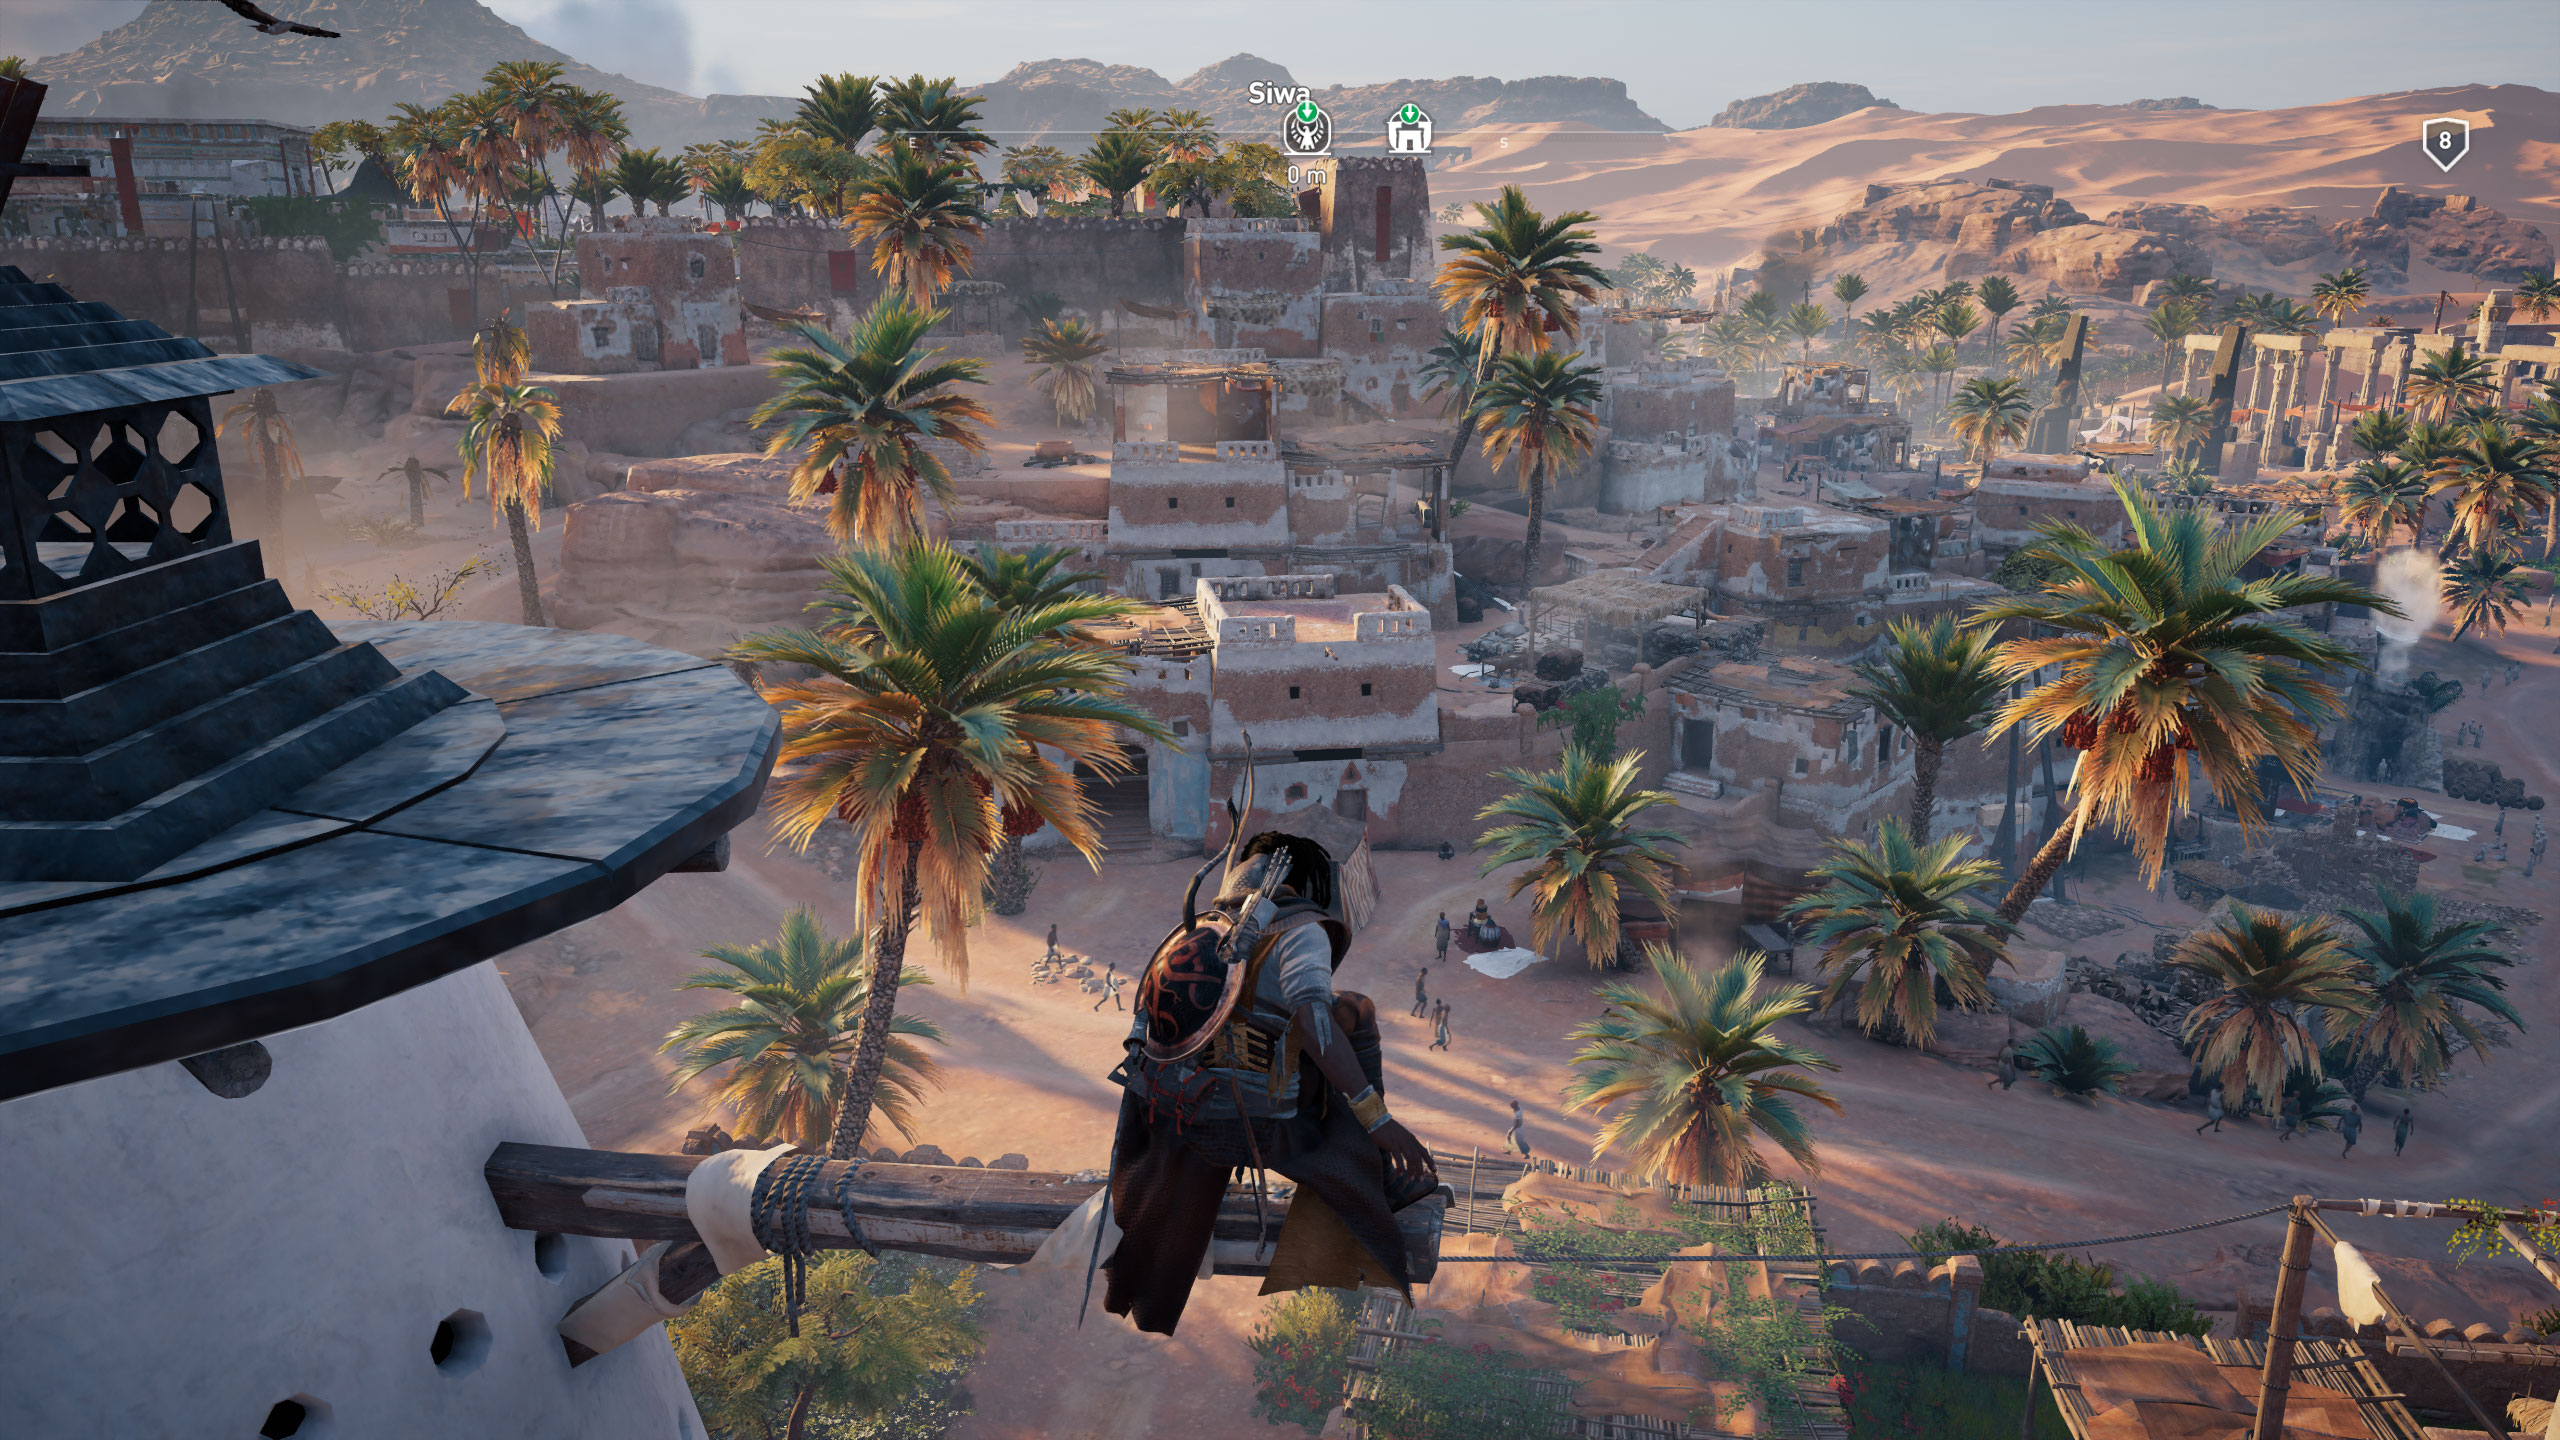 Assassin's Creed Origins is one of the most demanding games around